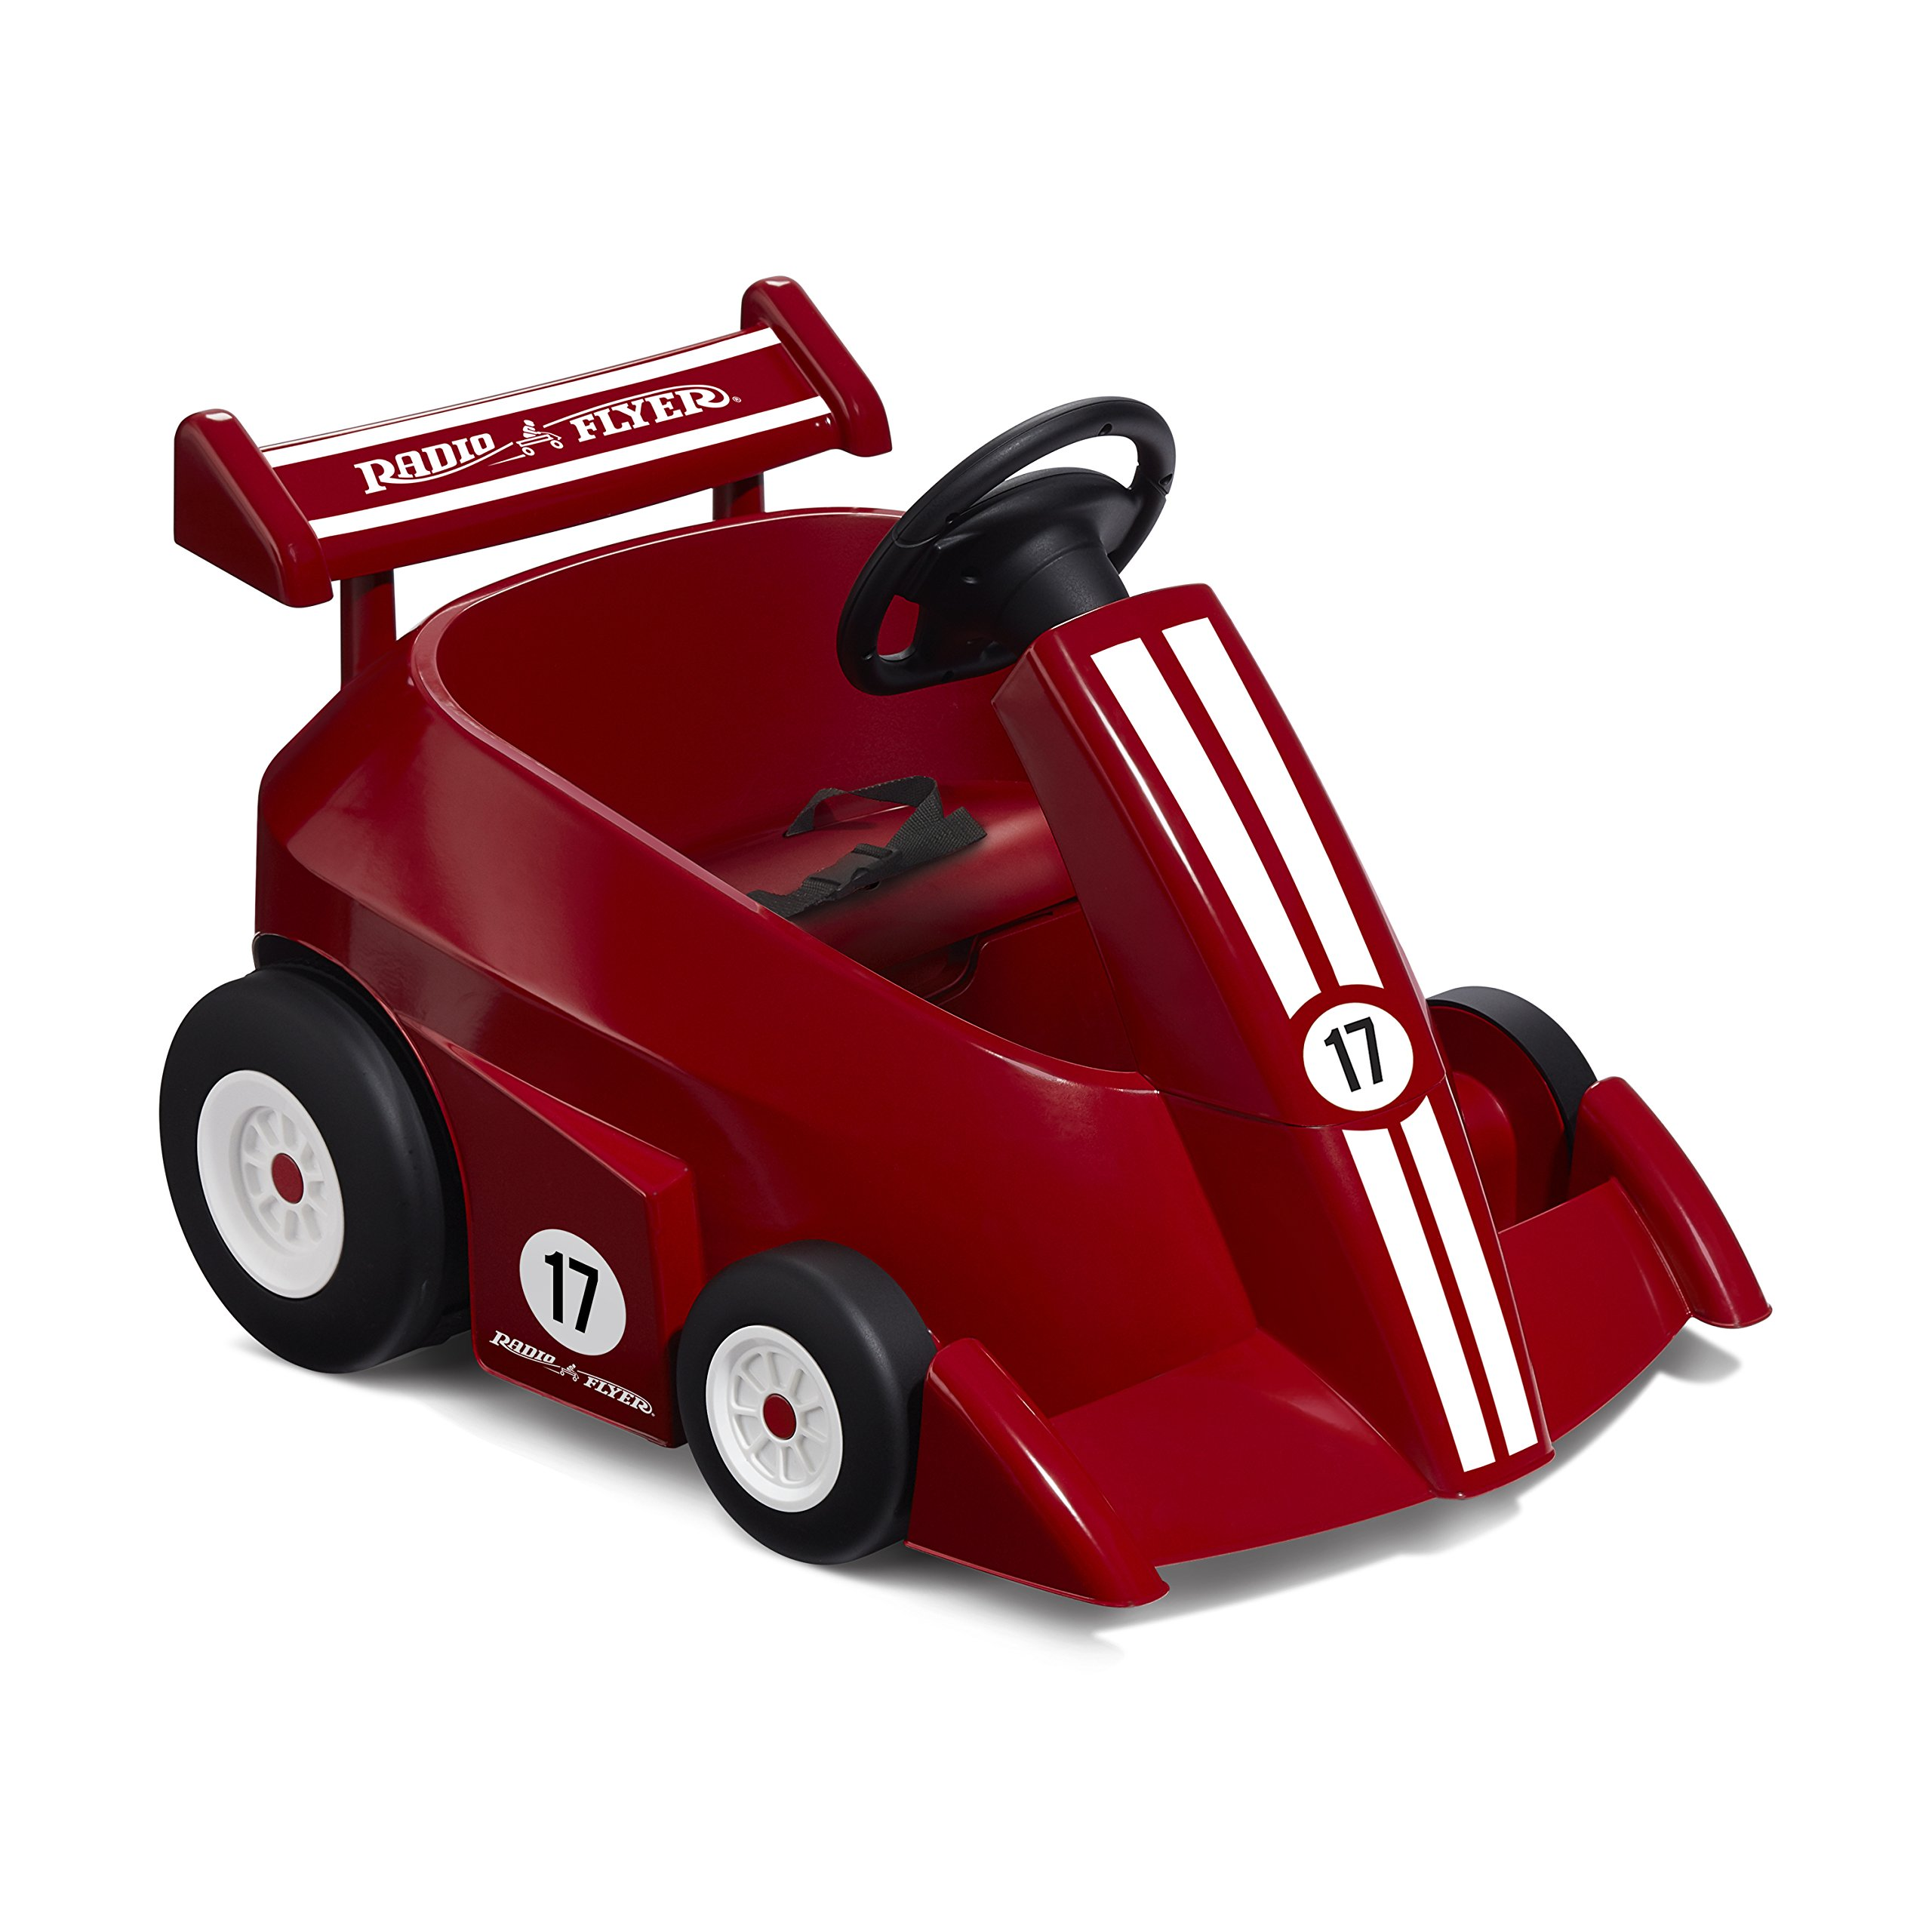 Radio Flyer Grow with Me Racer 6V Remote Control Car by Radio Flyer